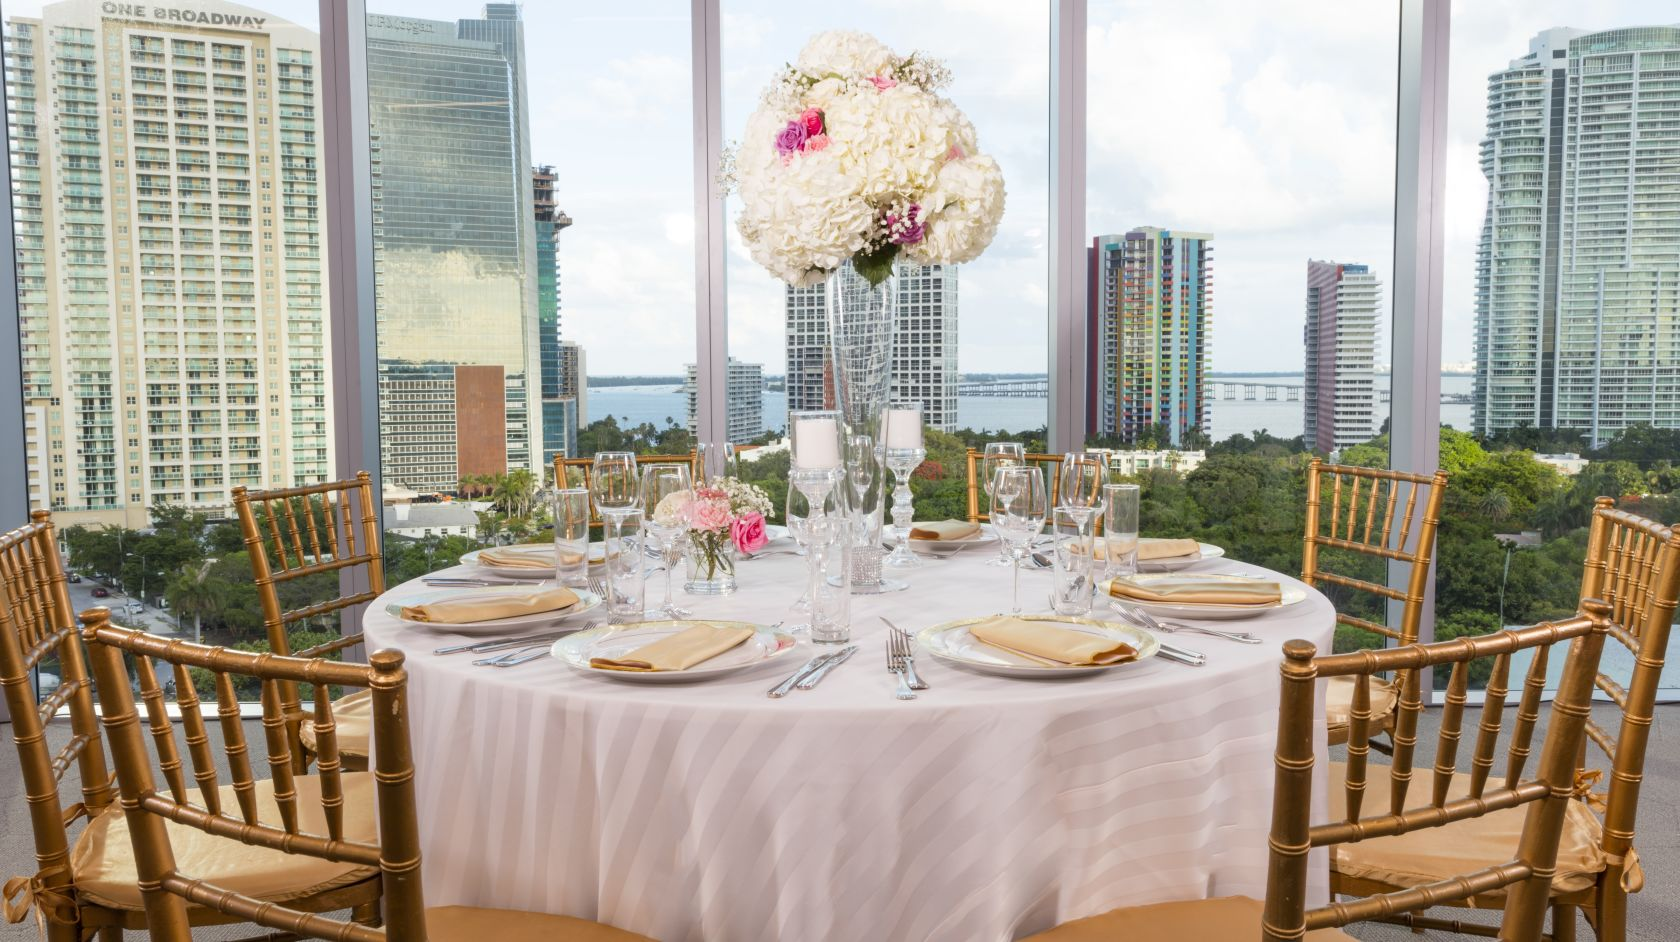 Atton Brickell Miami wedding venues